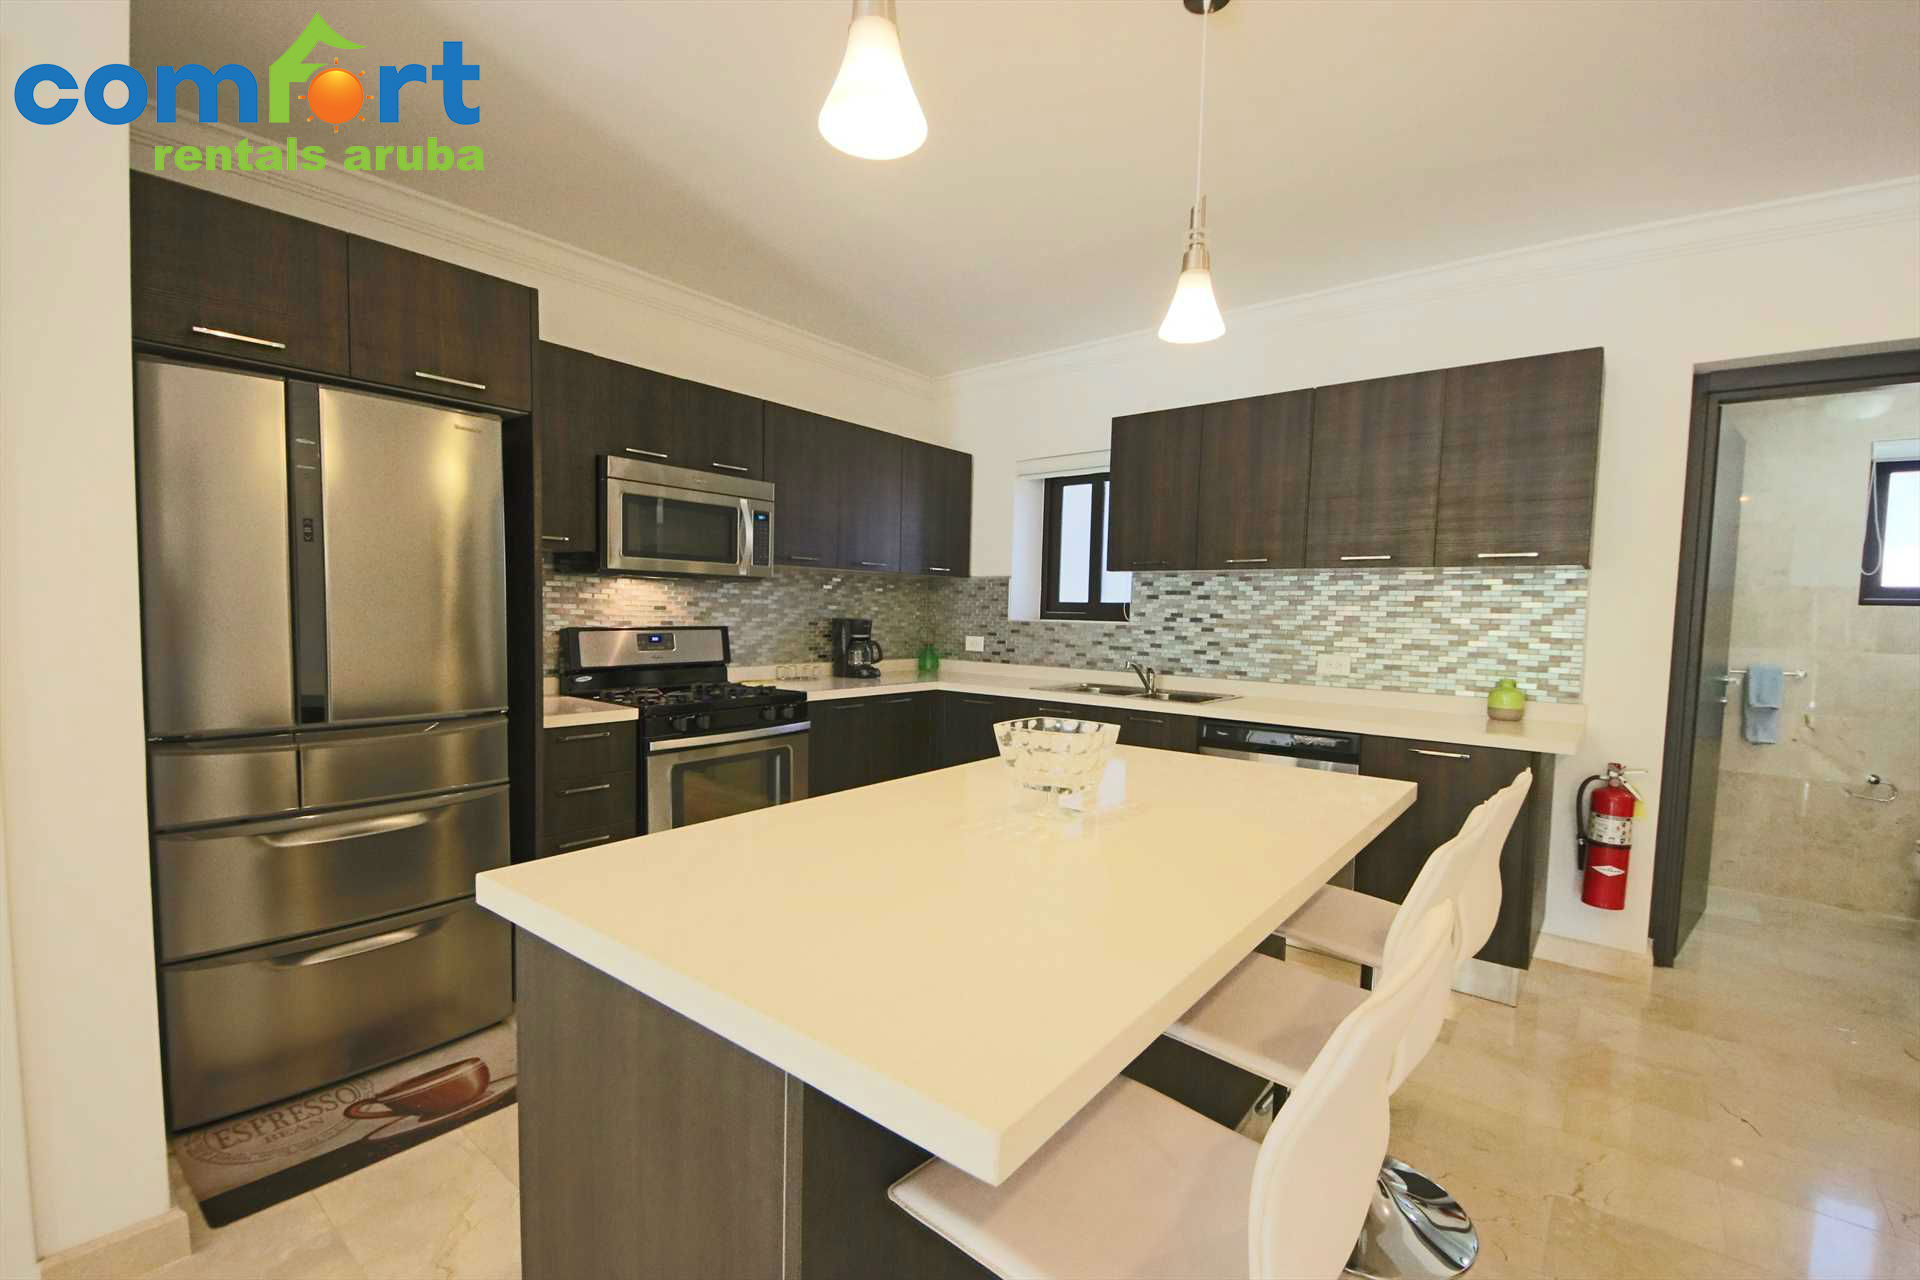 Open kitchen area with 3-seat bar-table